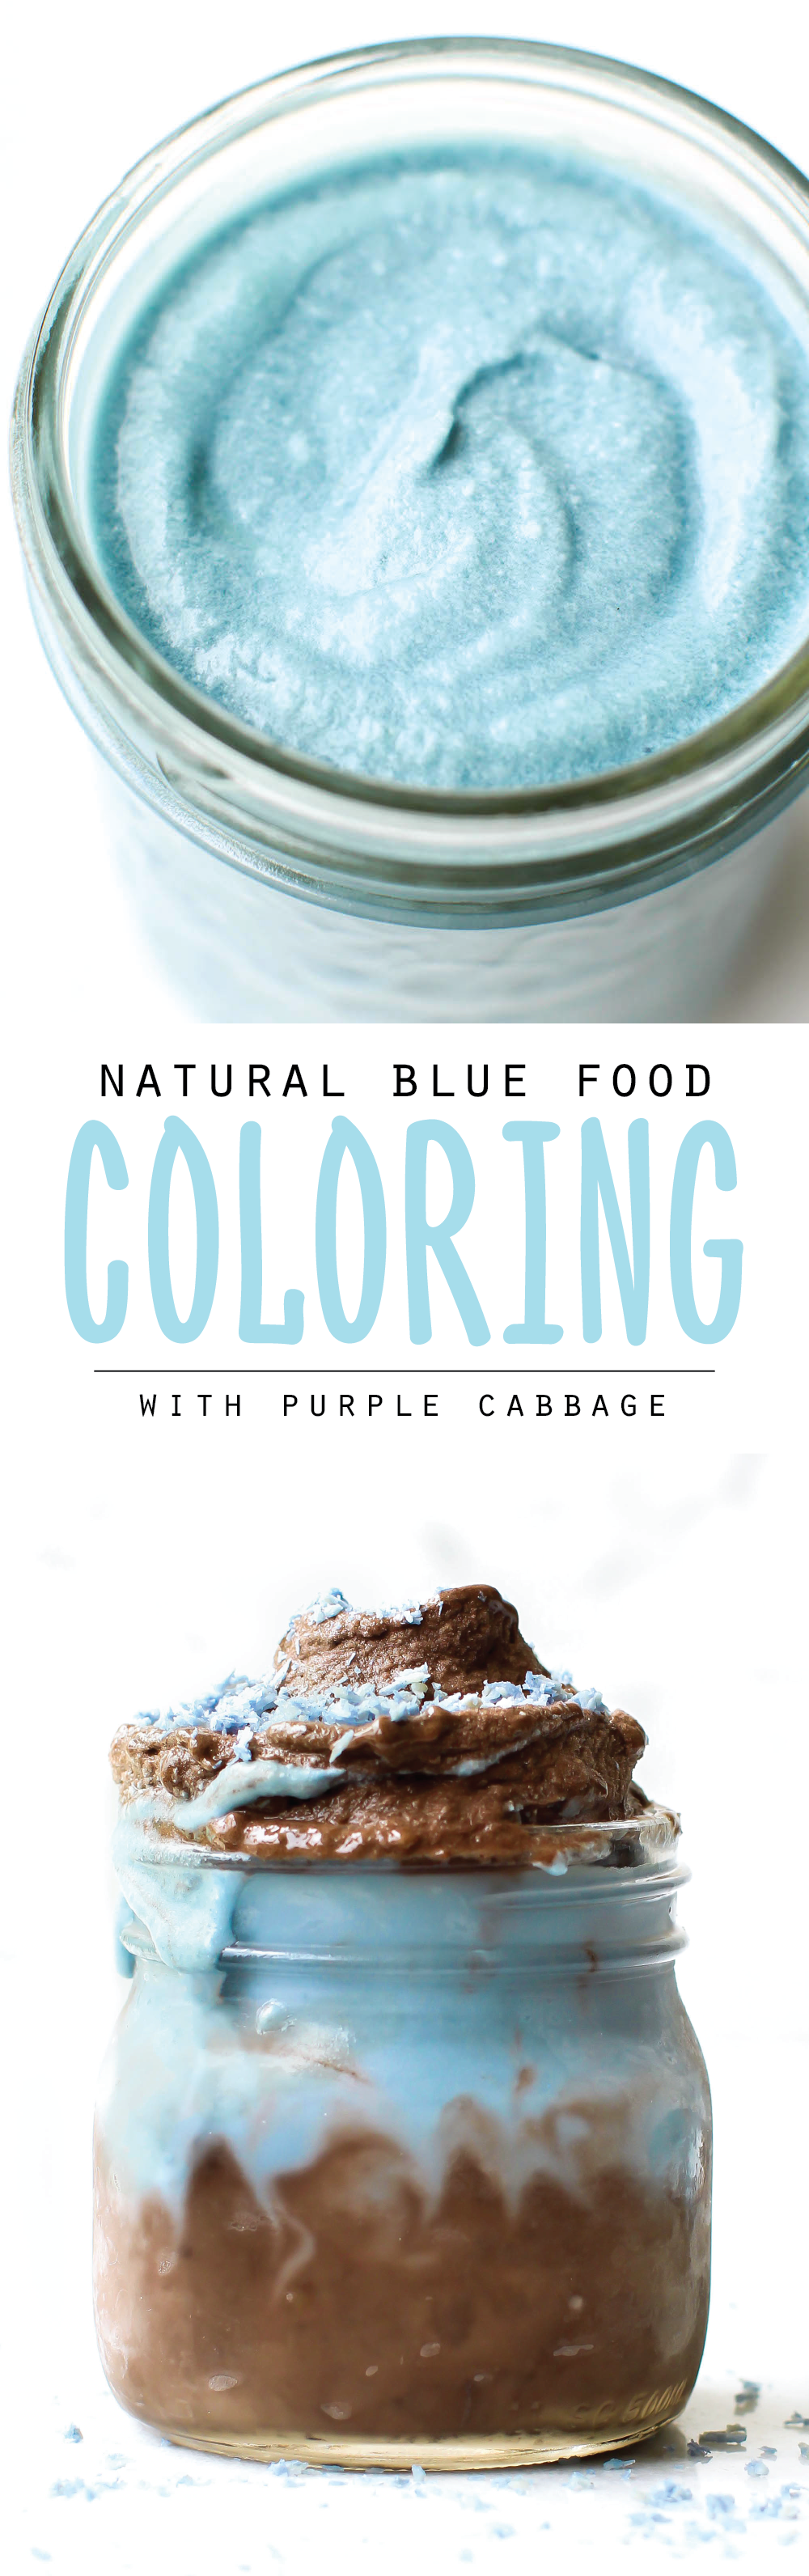 Homemade Natural Blue Food Coloring With Red Cabbage | Dessert and ...